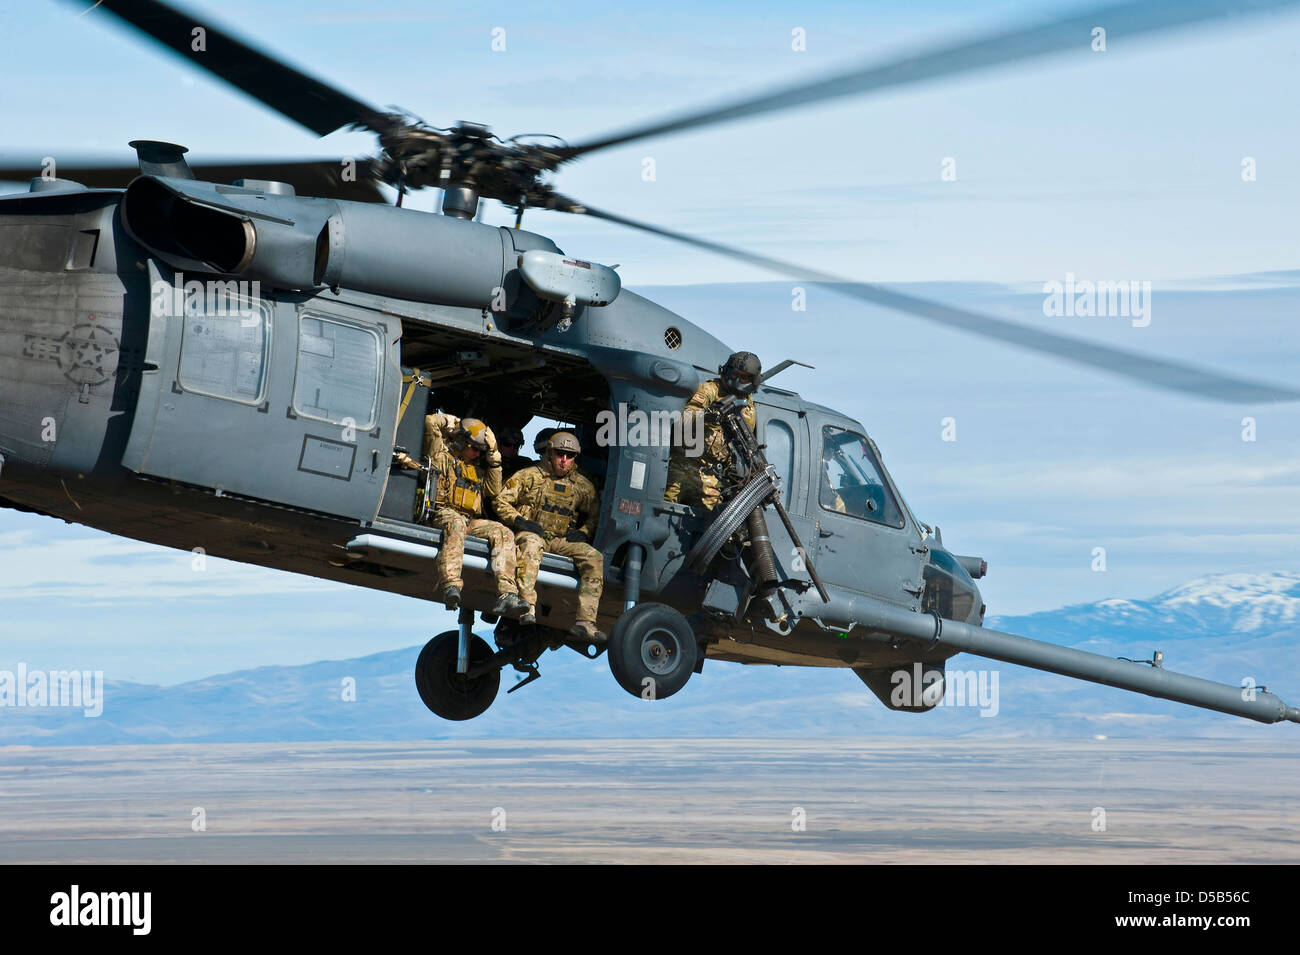 A US Air Force HH-60 Pavehawk helicopter with the 66th Rescue Squadron during a training exercise March 12, 2013, - Stock Image